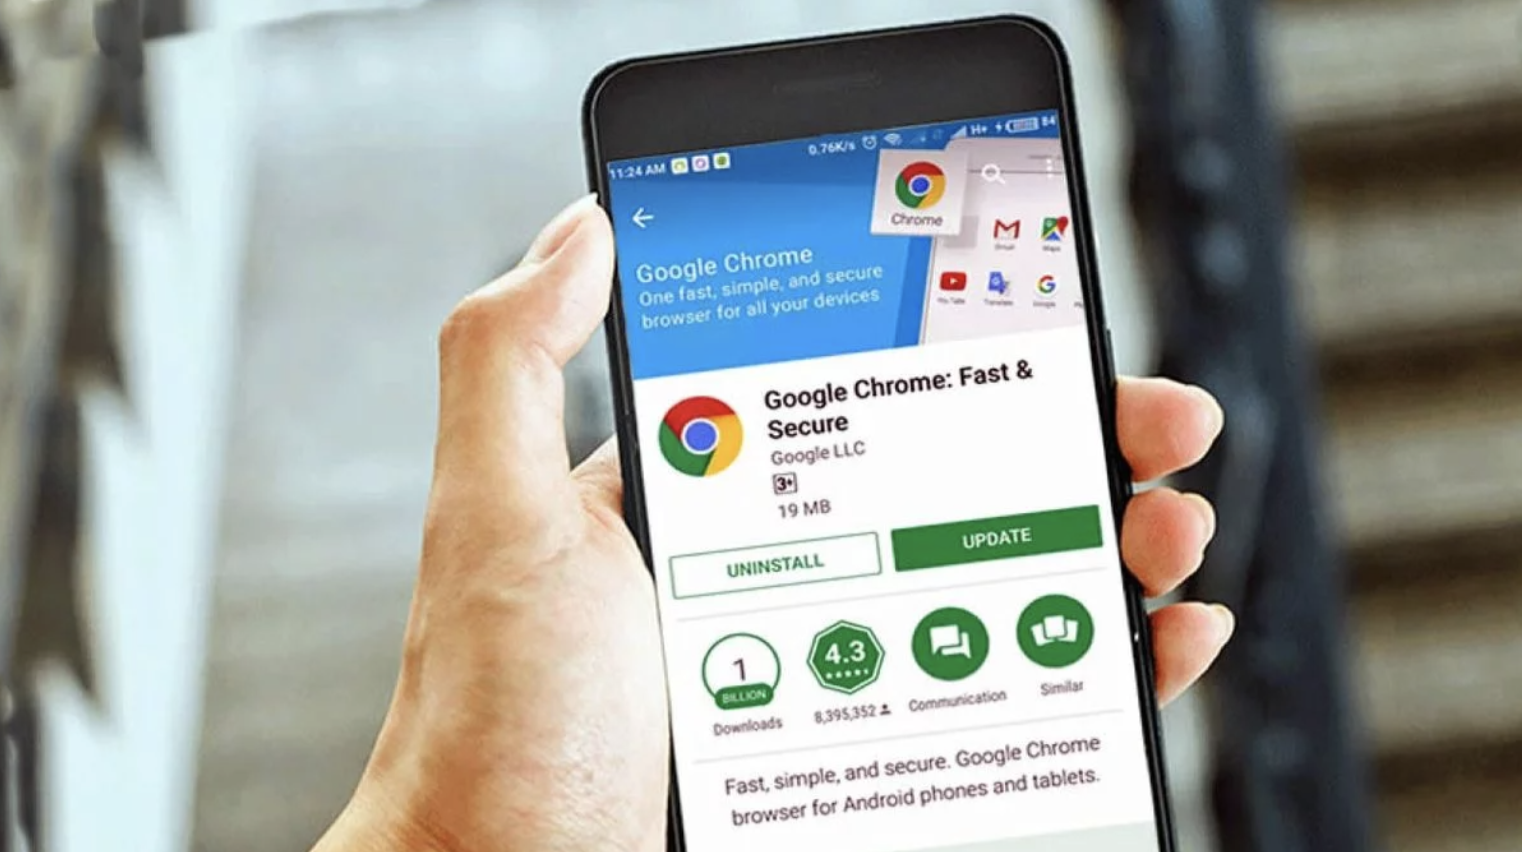 Google Chrome Adds Continuous Desktop Site Option for Android